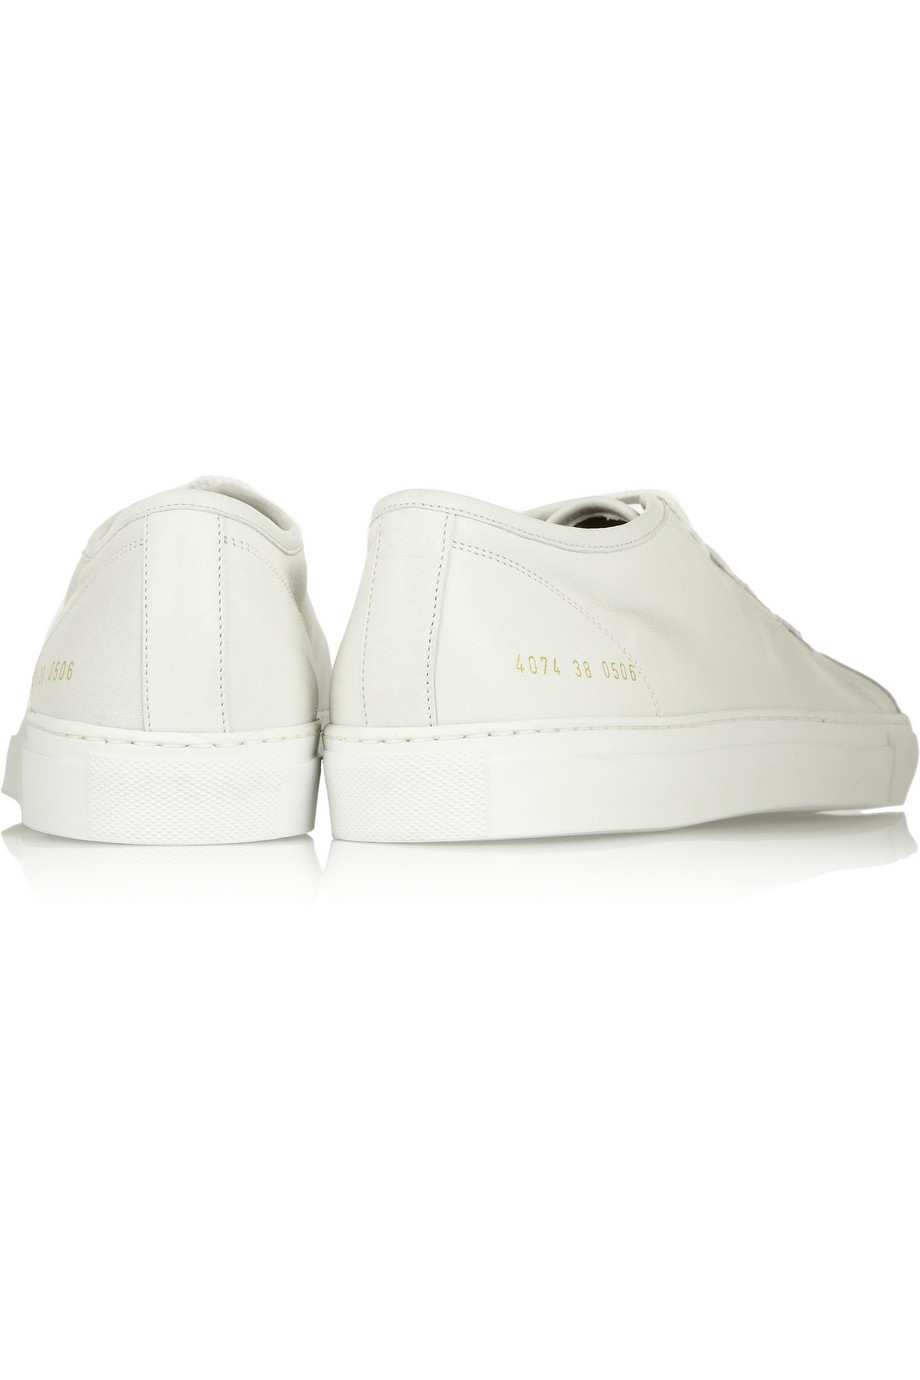 common projects tournament leather sneakers in white lyst. Black Bedroom Furniture Sets. Home Design Ideas